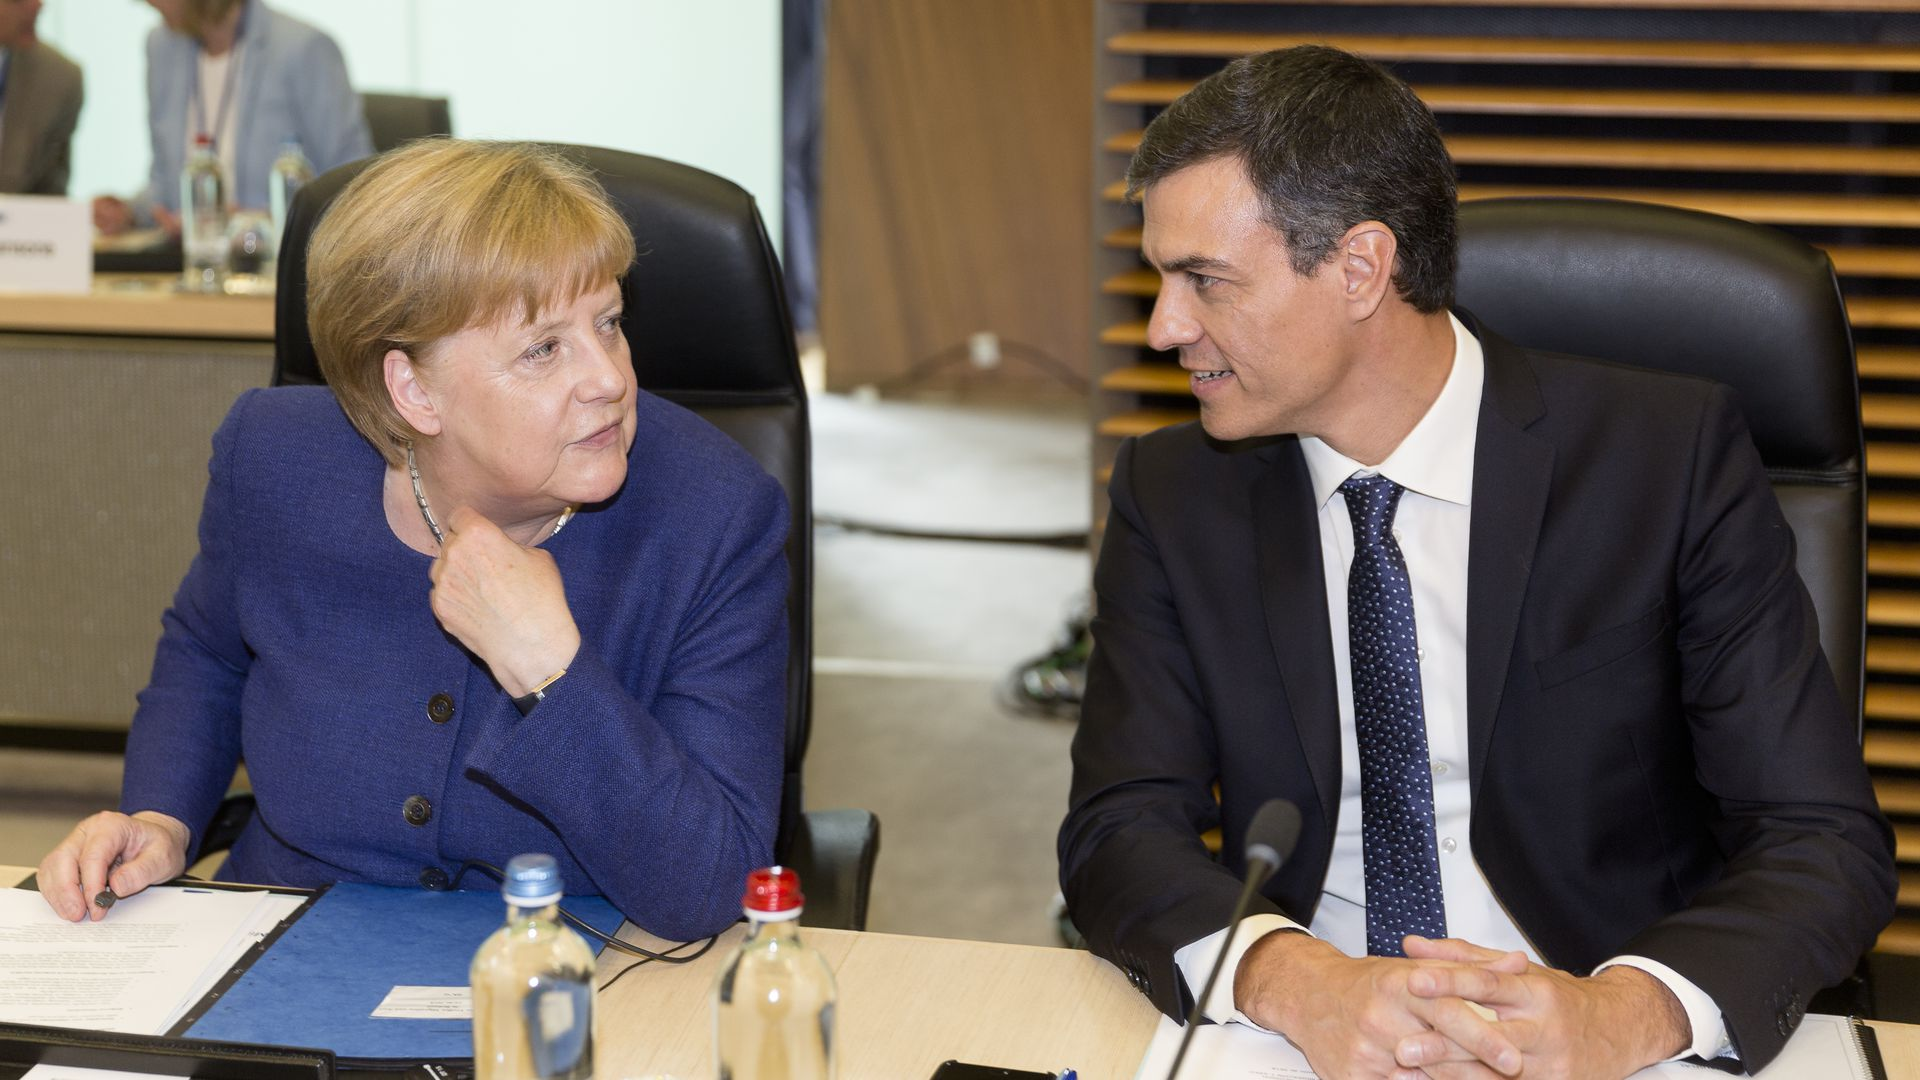 German Chancellor Angela Merke talks with Spanish Prime Minister Pedro Sanchez before a meeting on migration and asylum issues on June 24, 2018 in Brussels, Belgium.